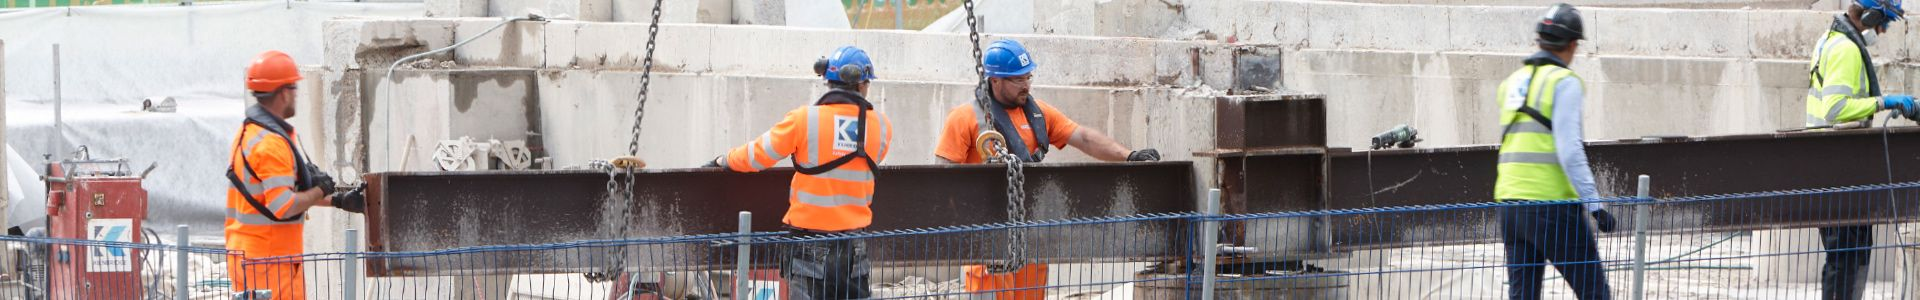 Vacancies at Kilnbridge in Construction, Demolition, Concrete Cutting, Fire Protection and Environmental